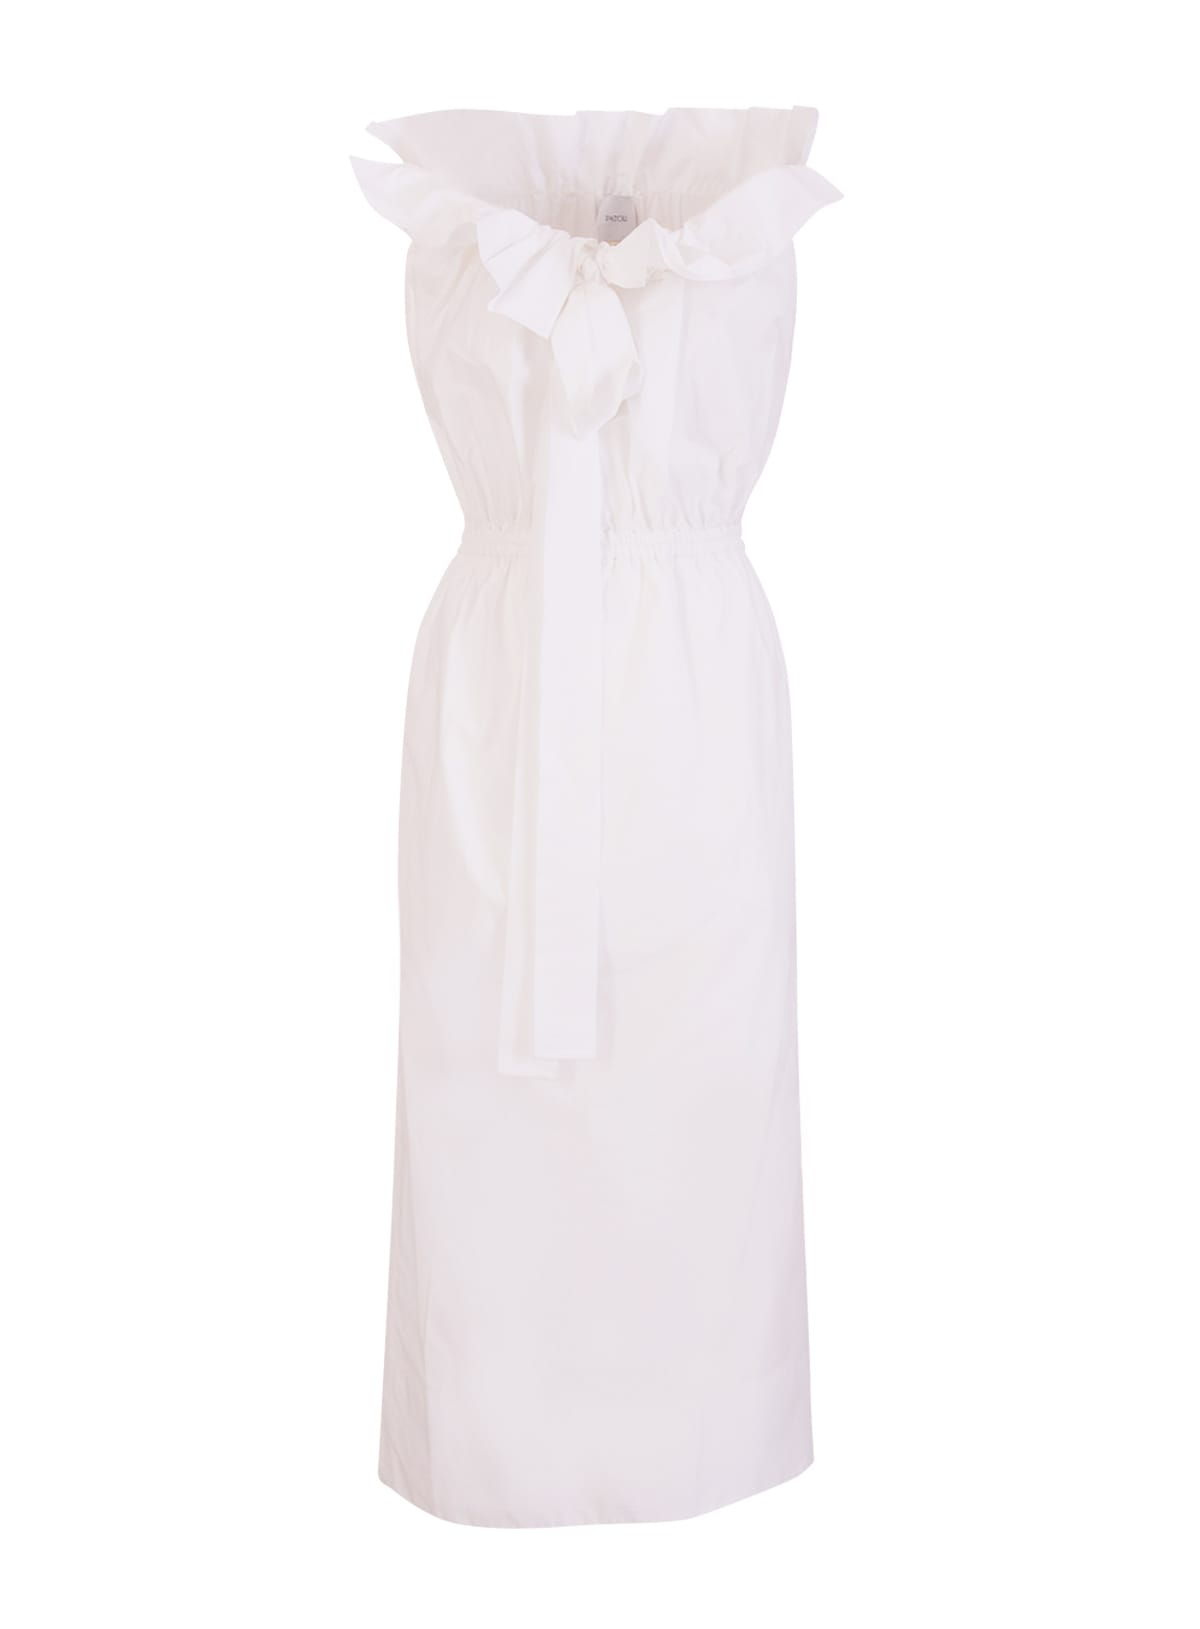 Buy Patou Embroidered Grosgrain Dress In Organic Cotton Poplin online, shop Patou with free shipping